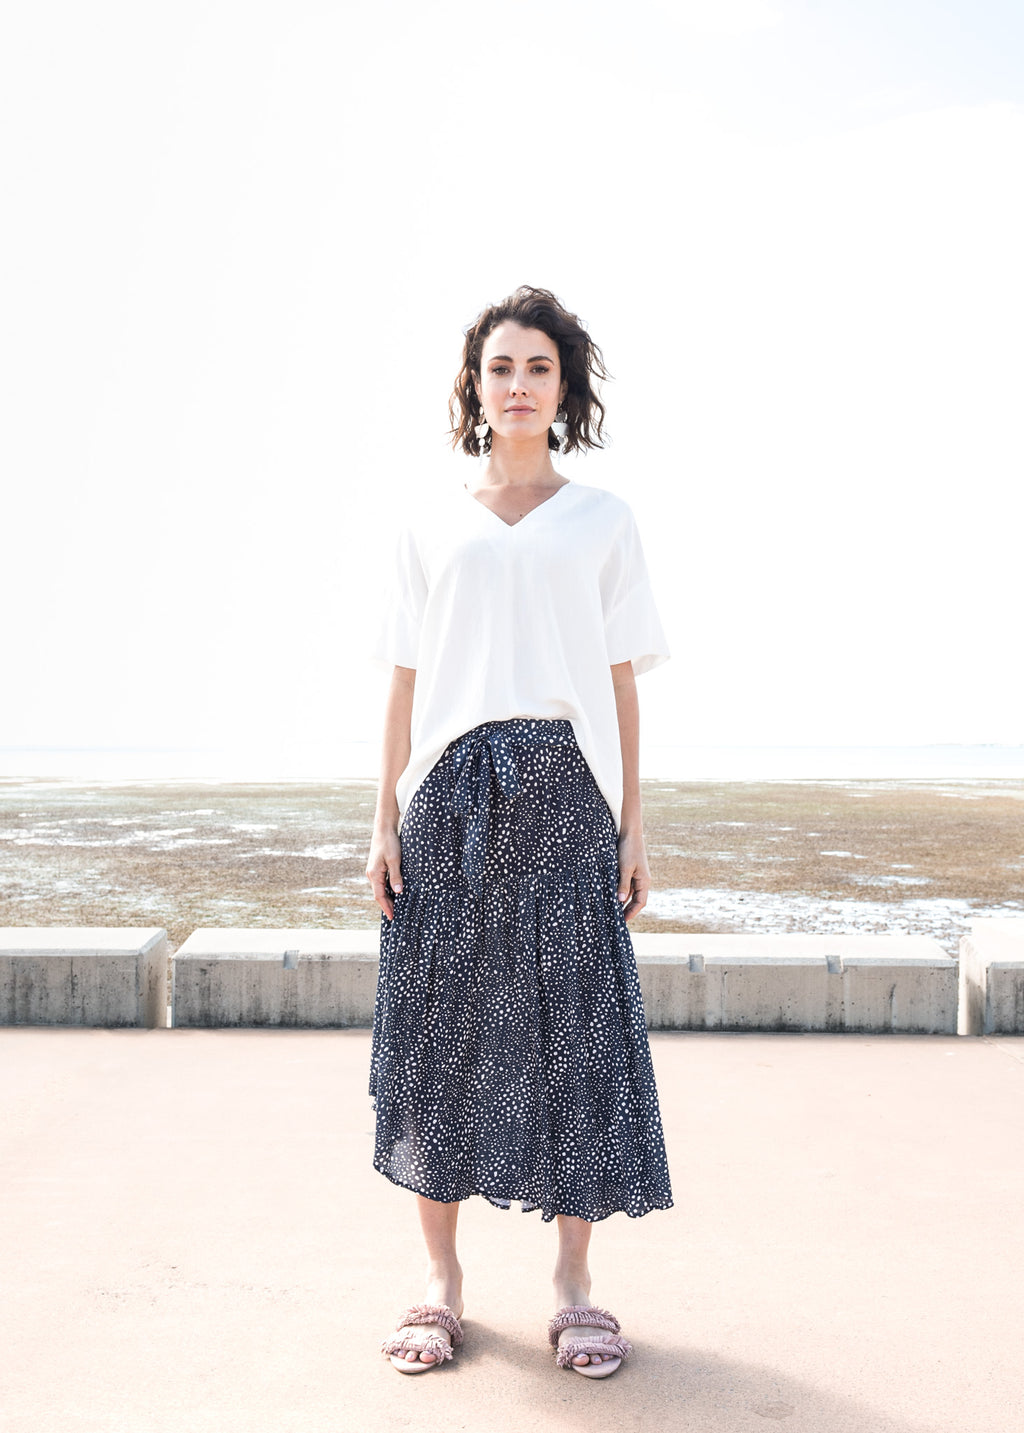 Tiqin Skirt in Dusted Ink